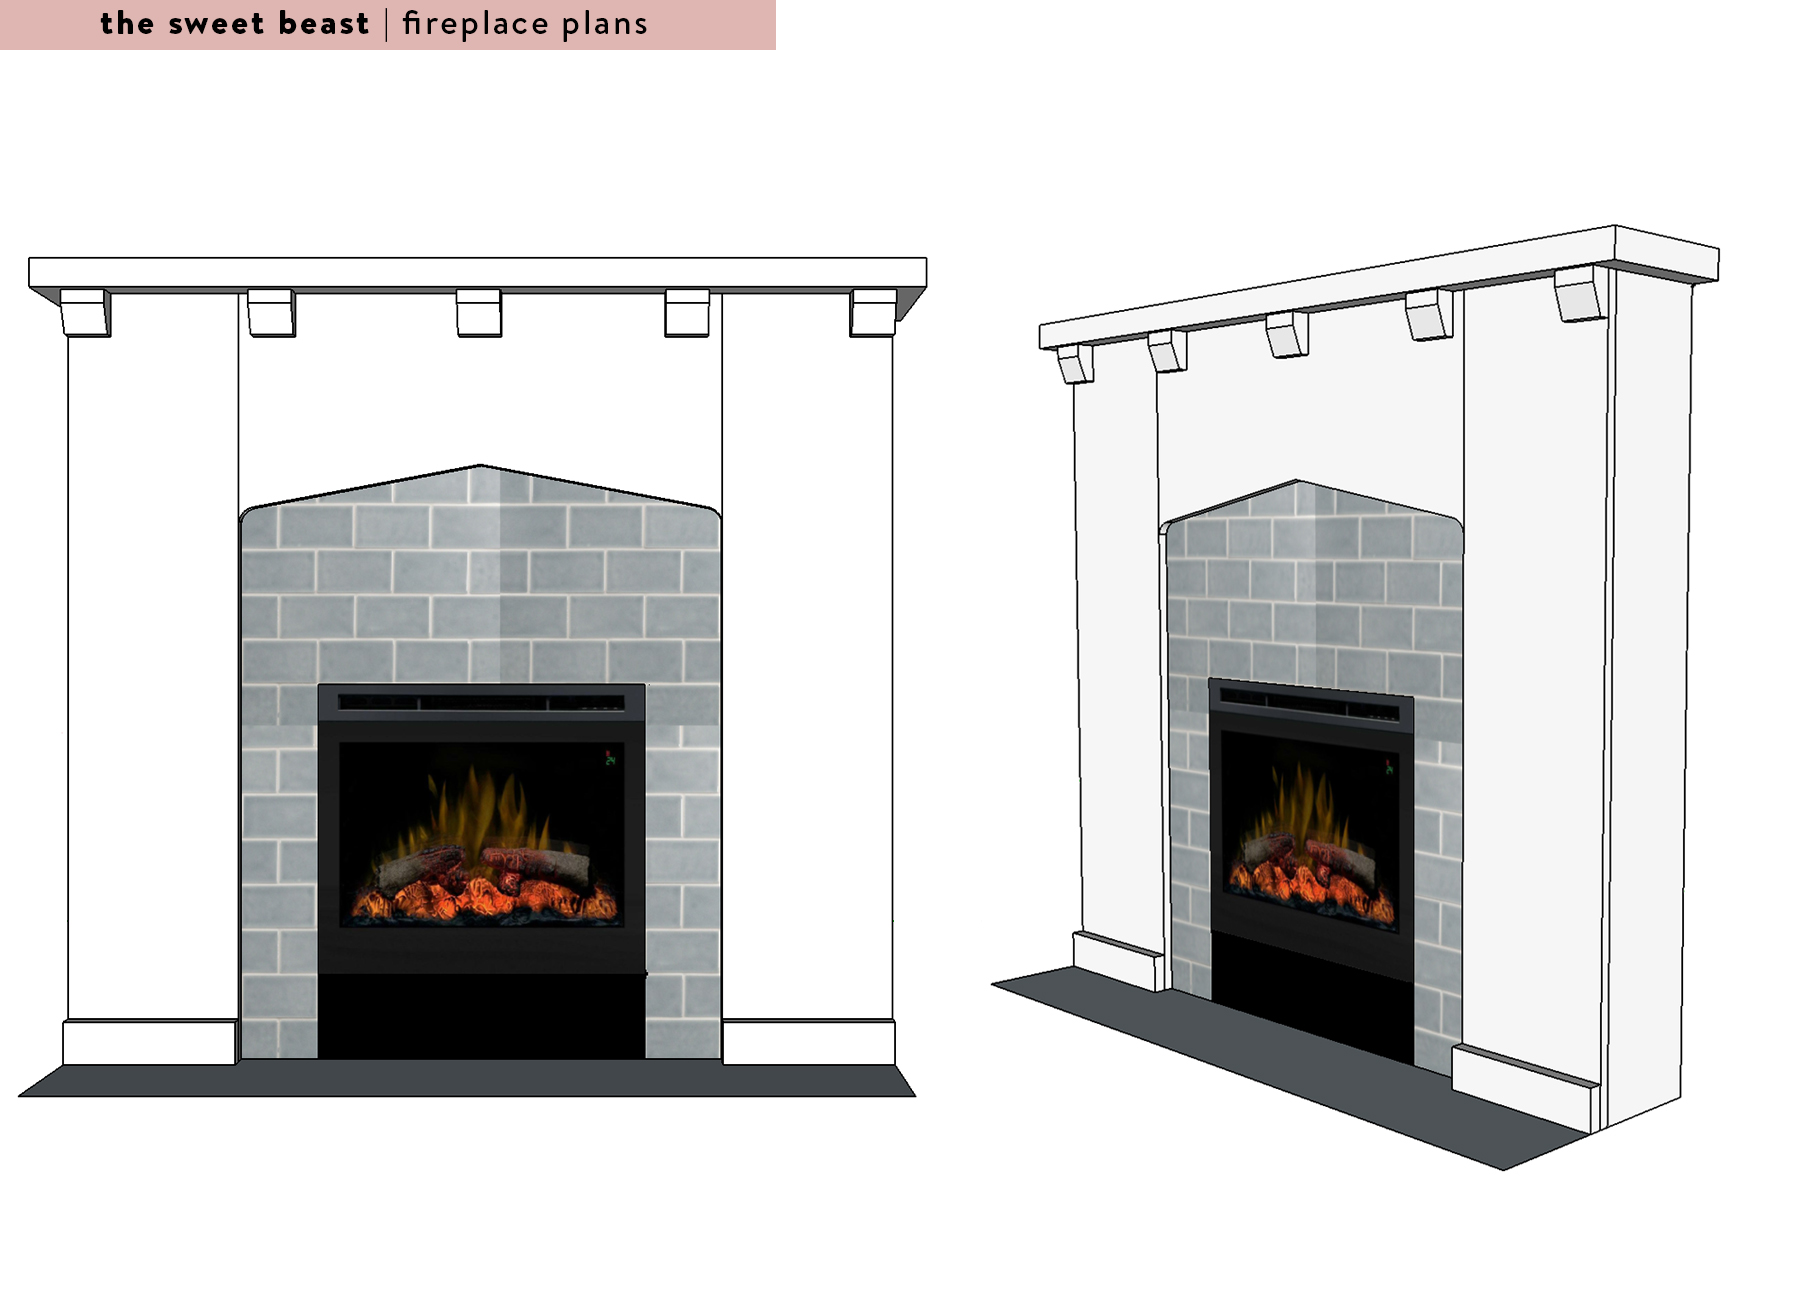 Sketchup Fireplace Plans